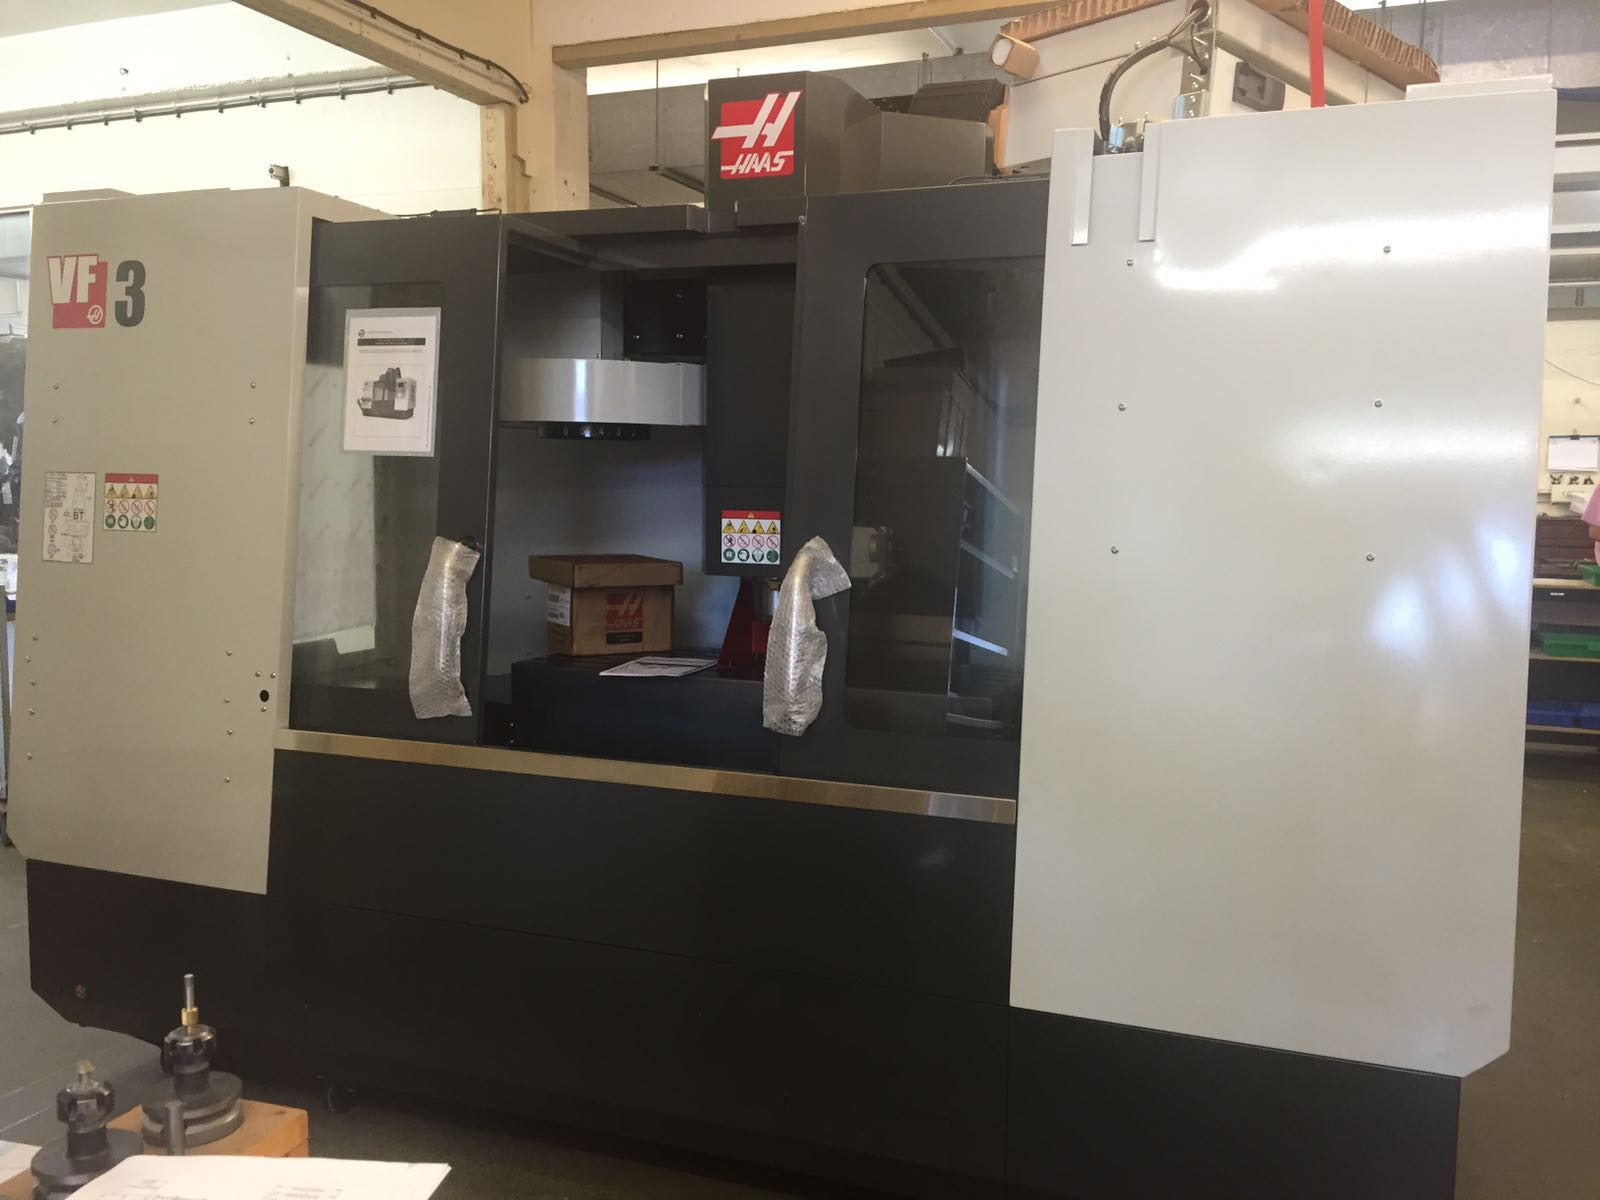 Newest CNC machine at Agate Products